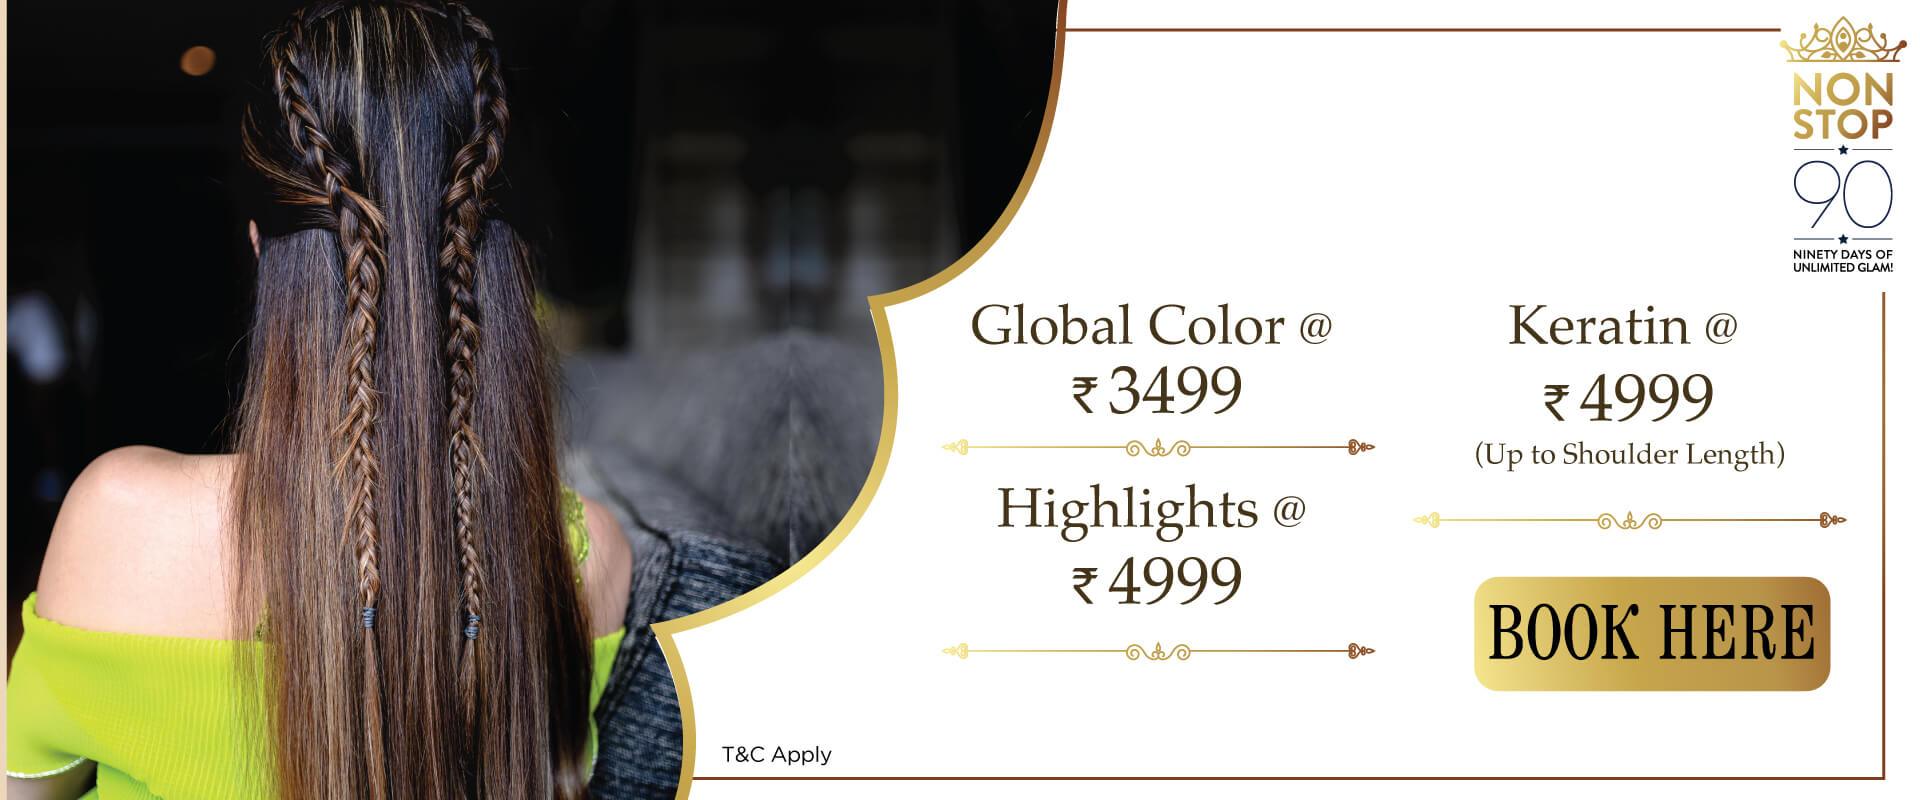 Offers on Hair Color @ Biguine India